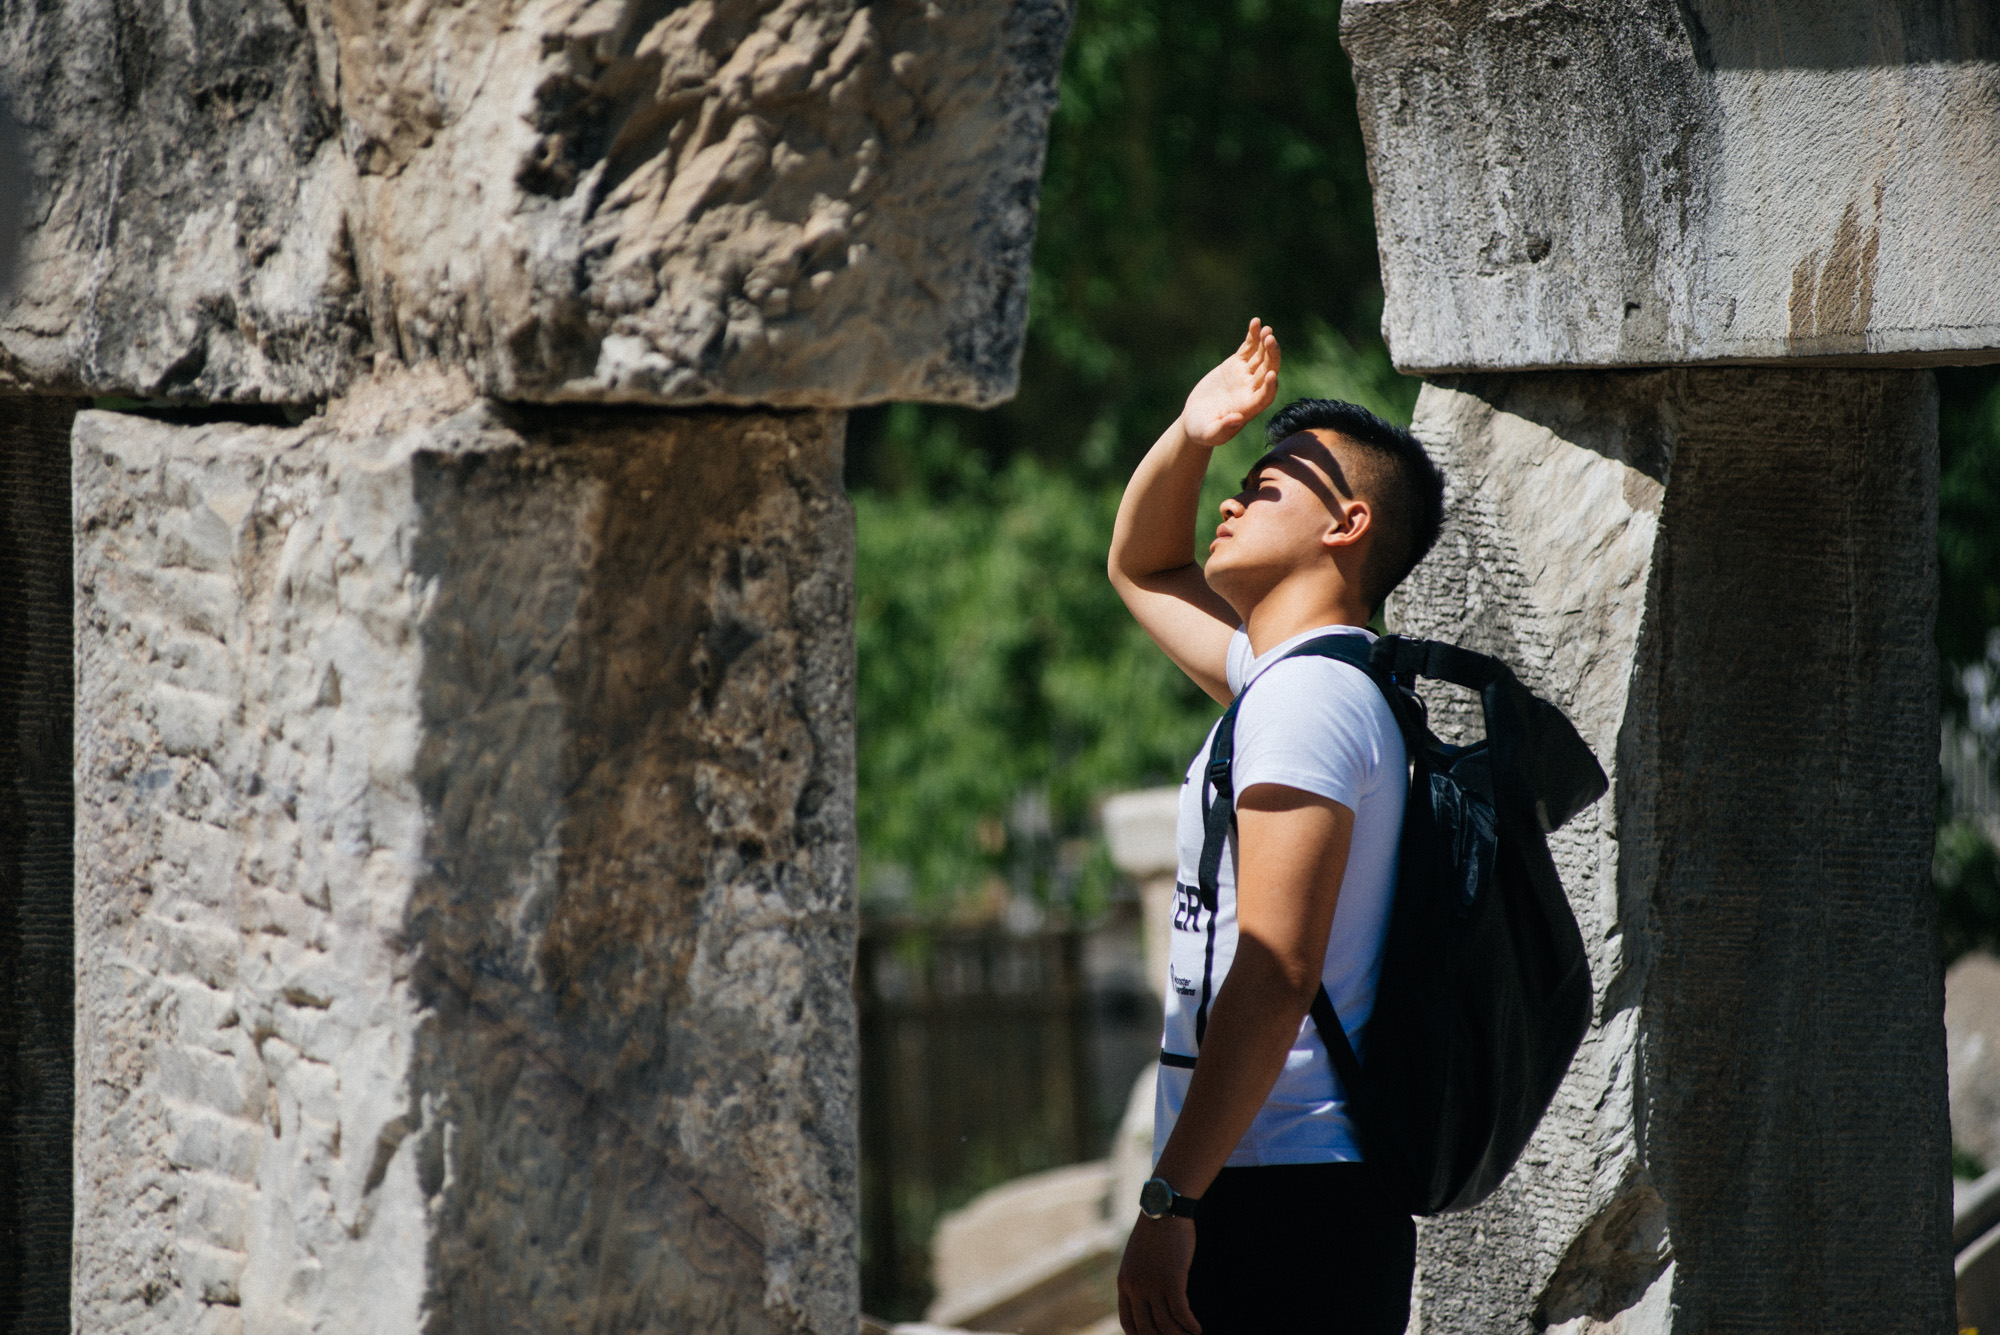 On a hot spring day last week, a tourist looks at ruins that have been stacked up in a seemingly random fashion. It's like a modern day Stonehenge.